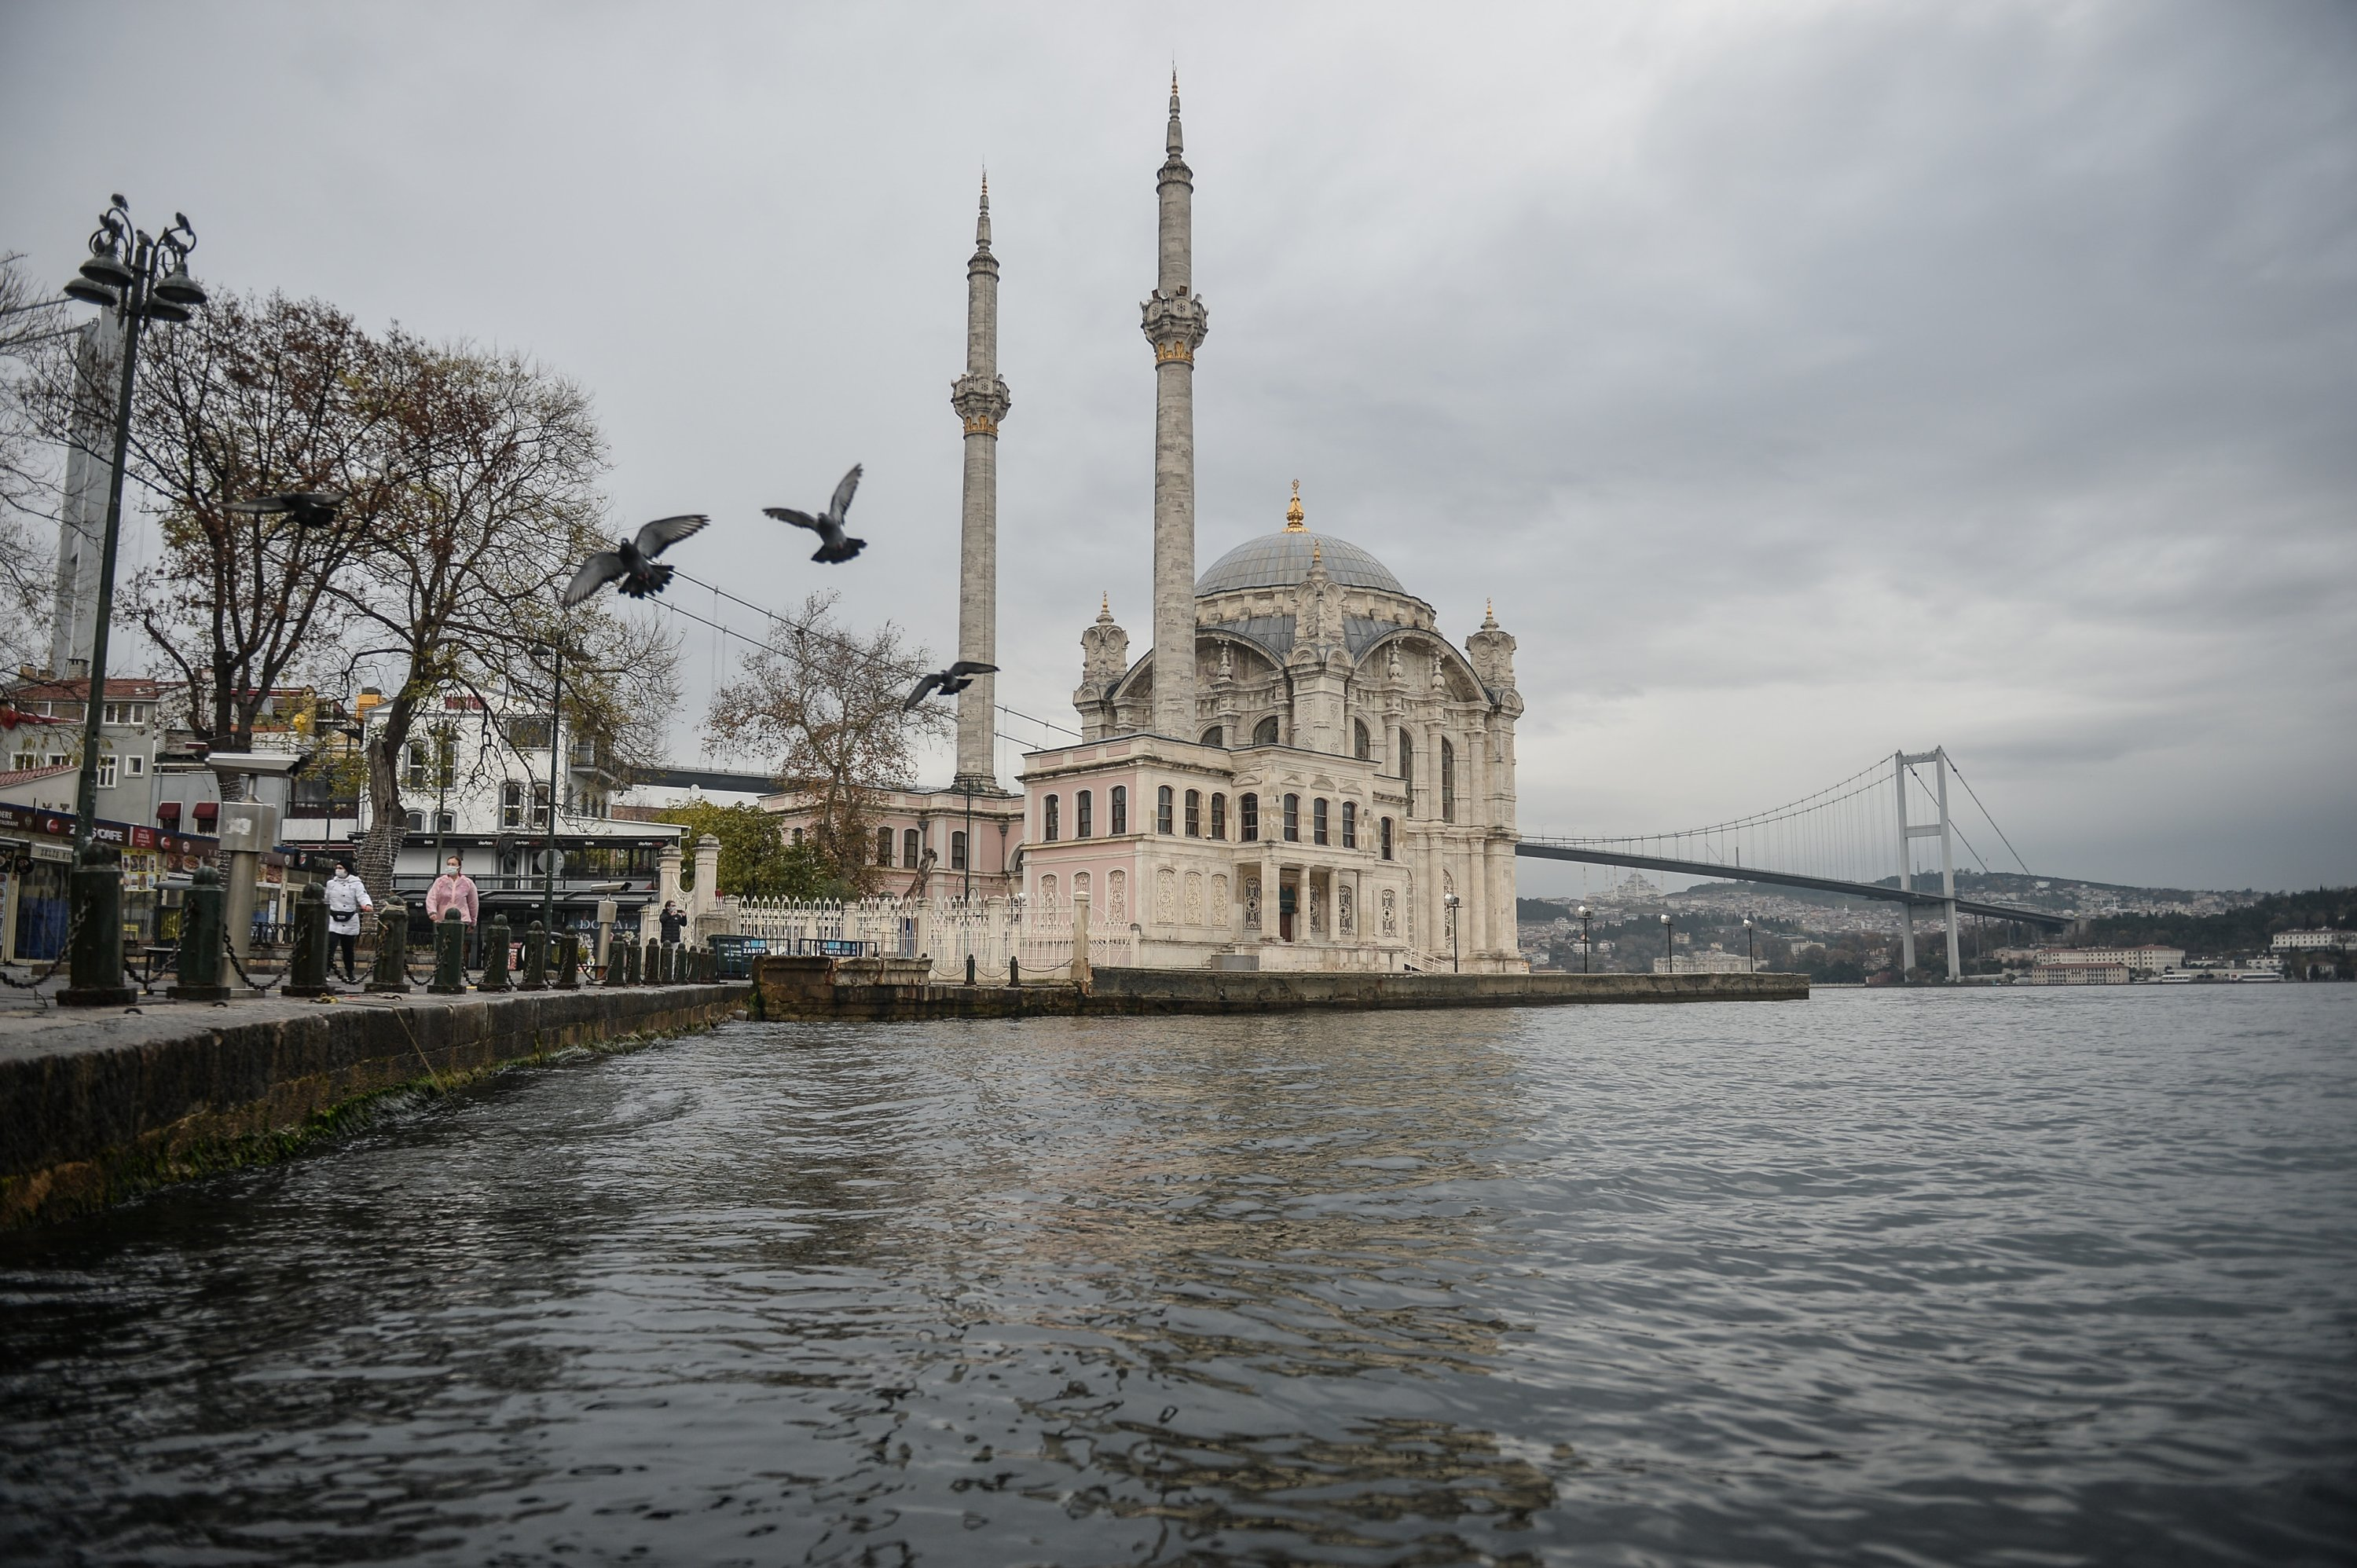 Photo shows the July 15 Democracy and Martyrs' Bridge and the Ortaköy Mosque as two pigeons fly over the waters of the Bosporus in Istanbul, December 12, 2020. (DHA Photo)